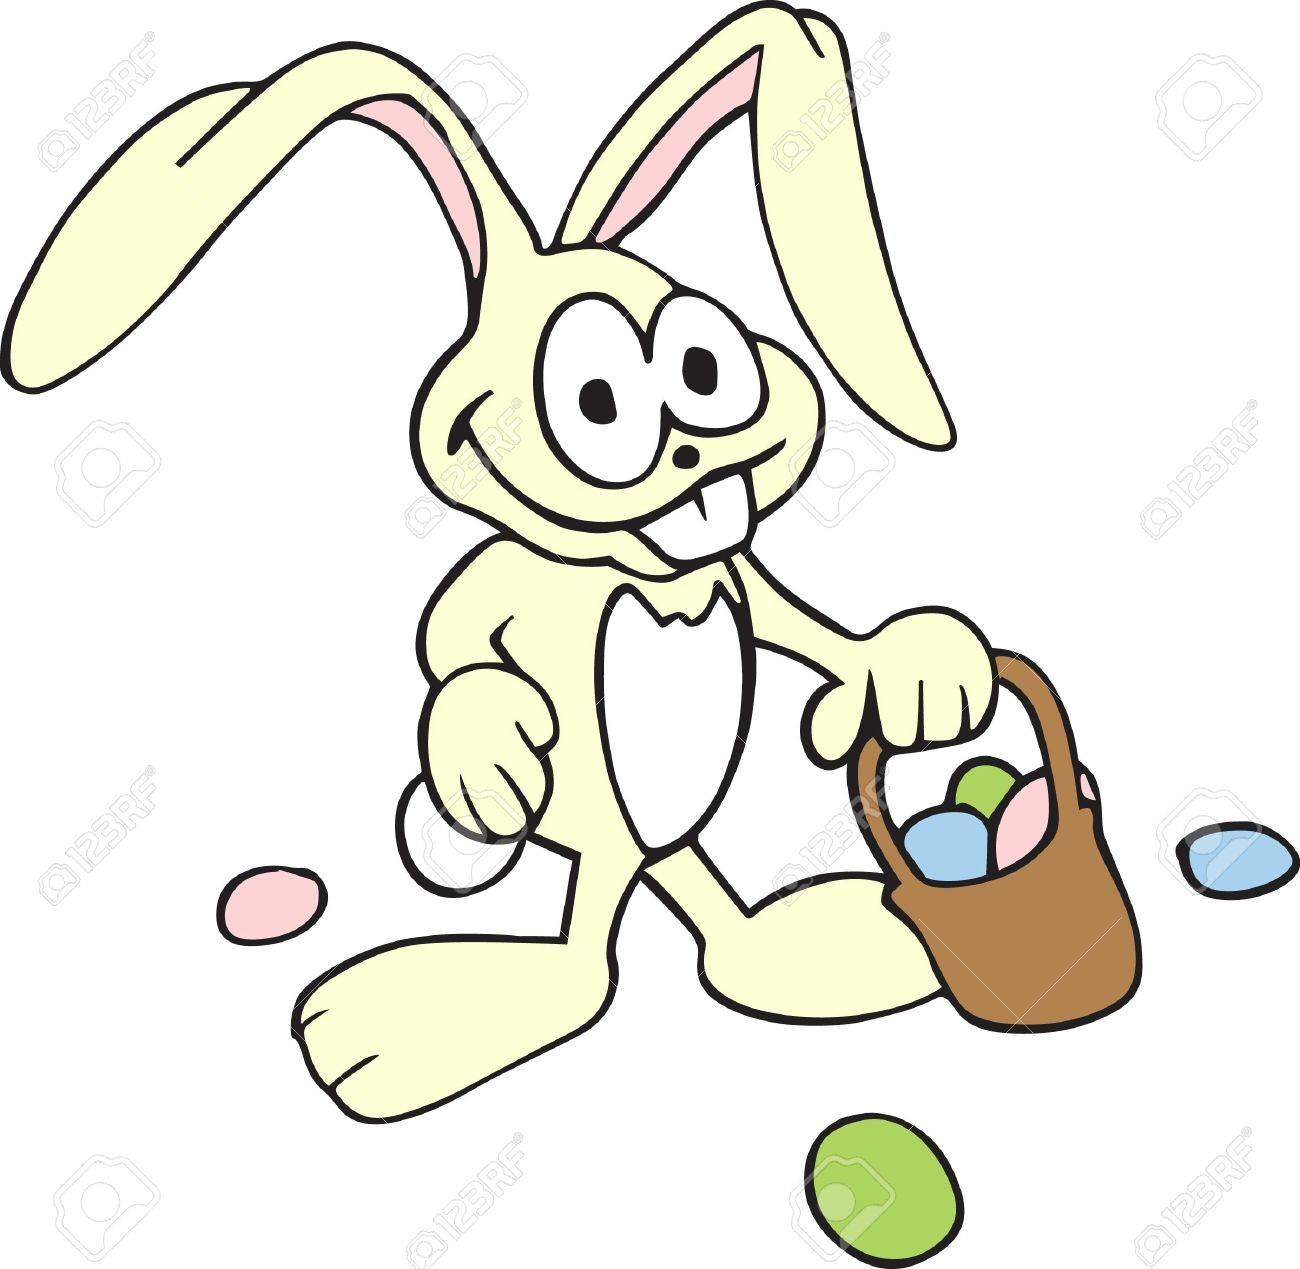 A Silly Bunny Is Great For Delivering Easter Eggs Stock Vector